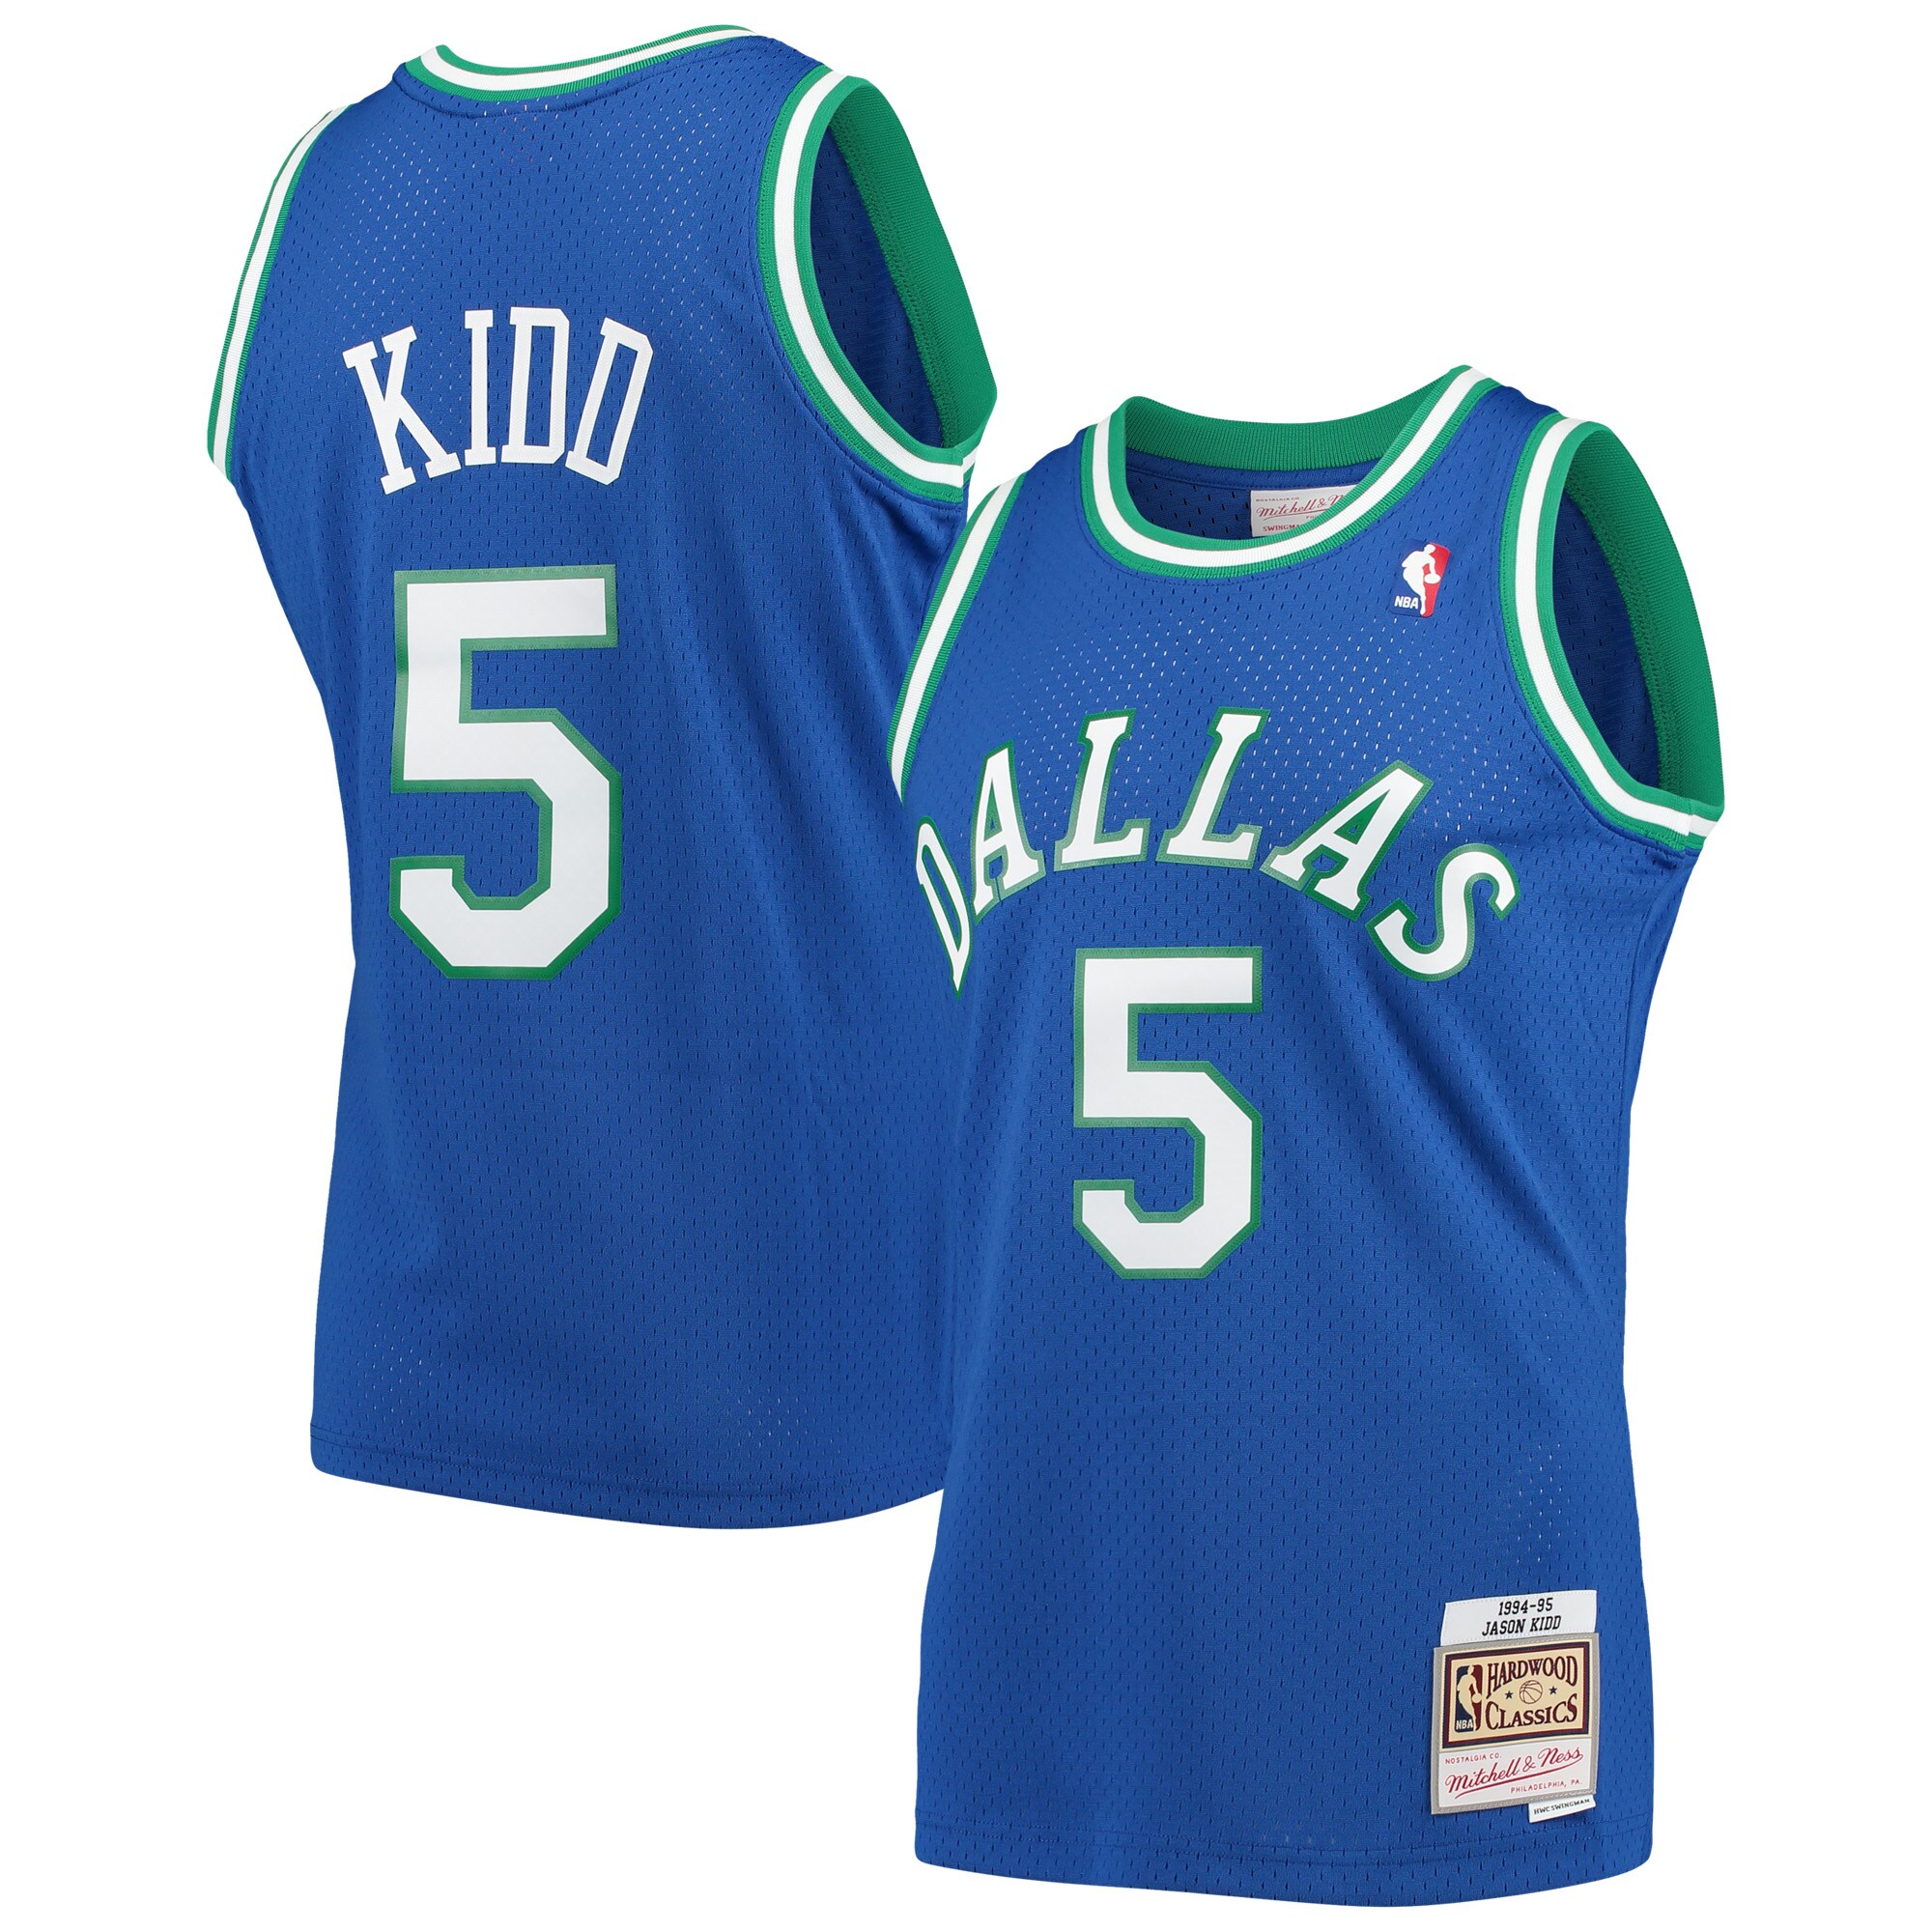 Jason Kidd Dallas Mavericks Mitchell & Ness 1994-95 Hardwood Classics Swingman Player Jersey - Blue